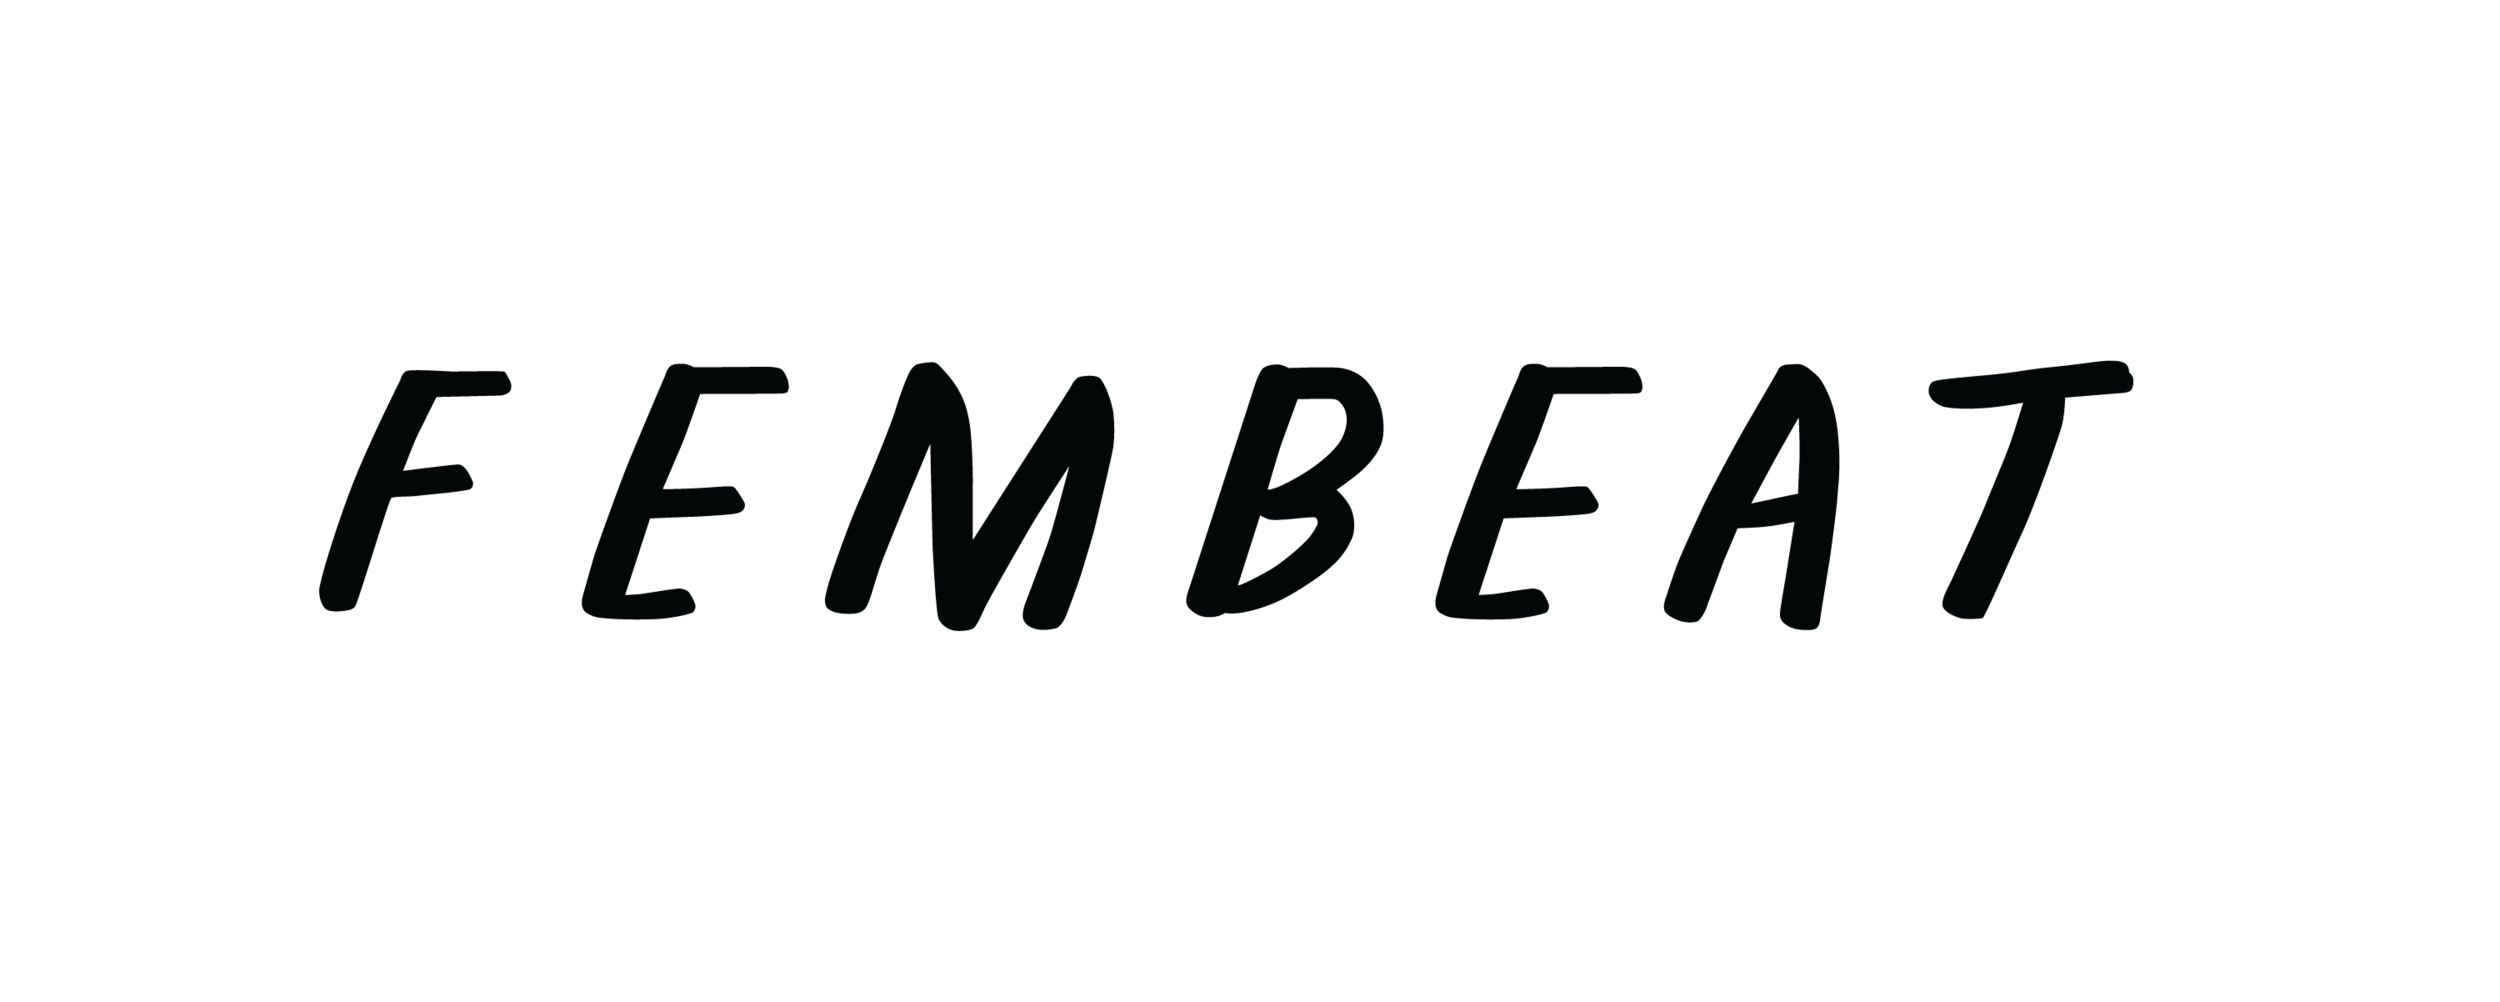 Fembeat black text_white background.png